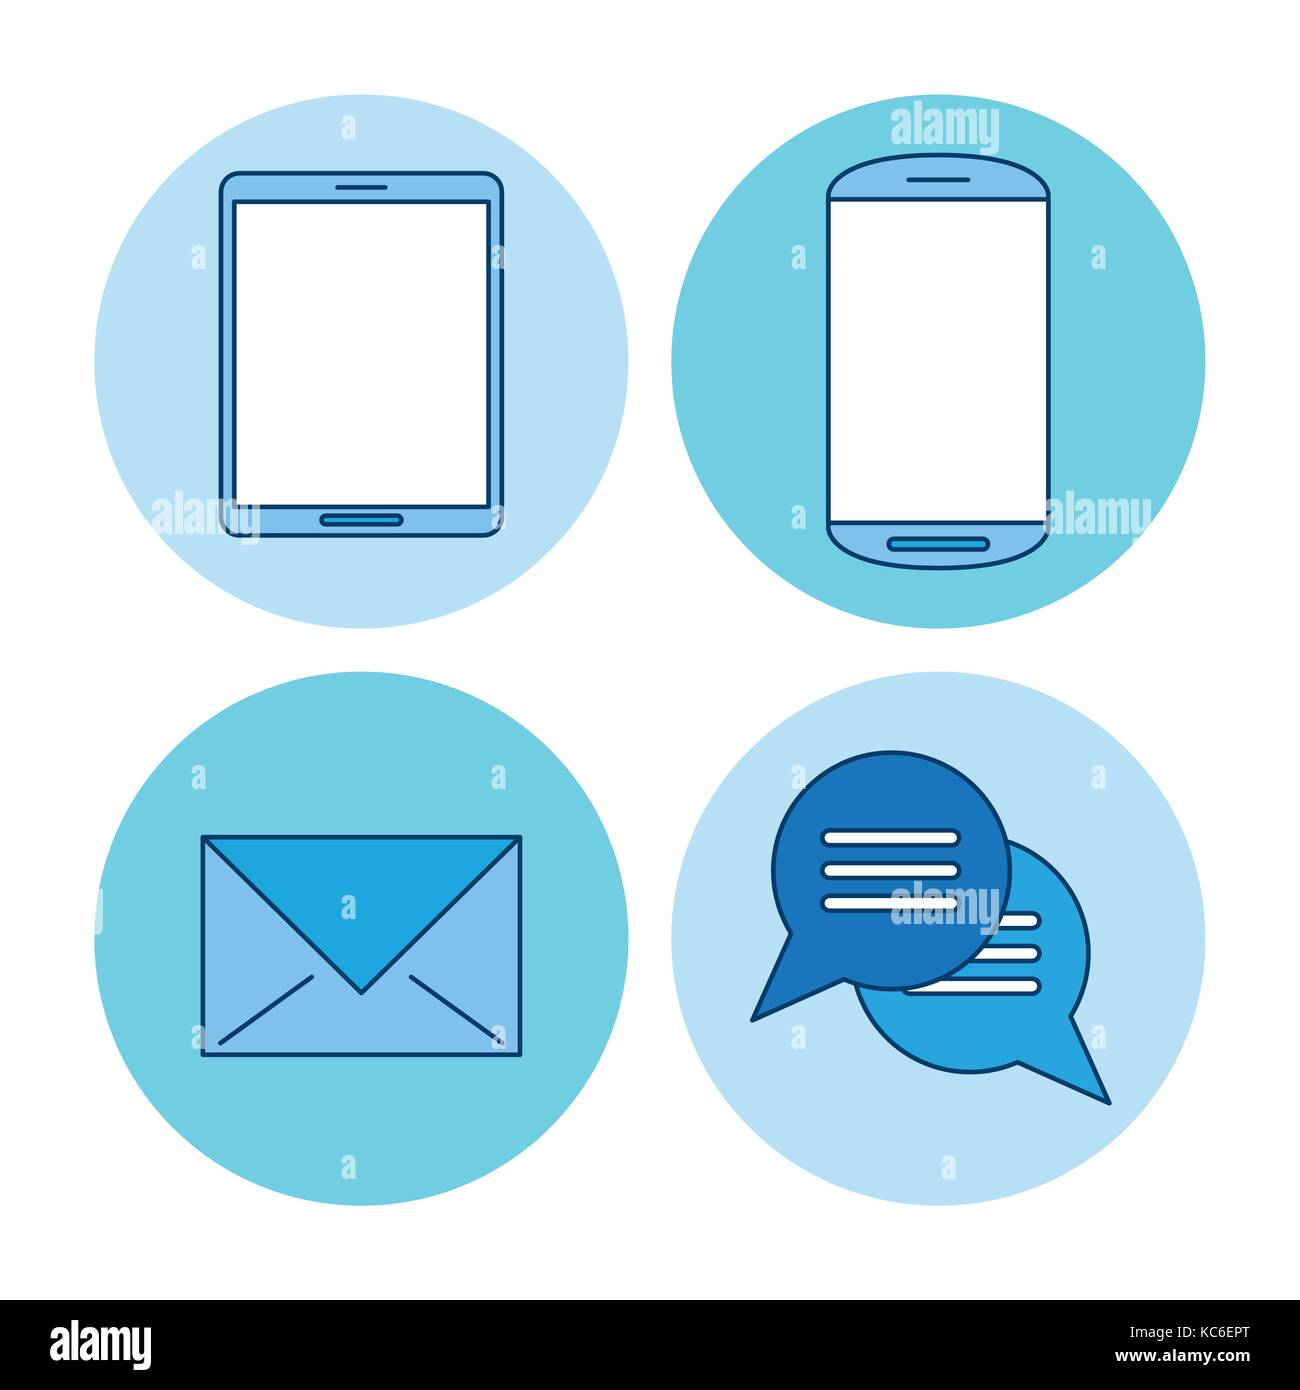 Chat and SMS - Stock Image